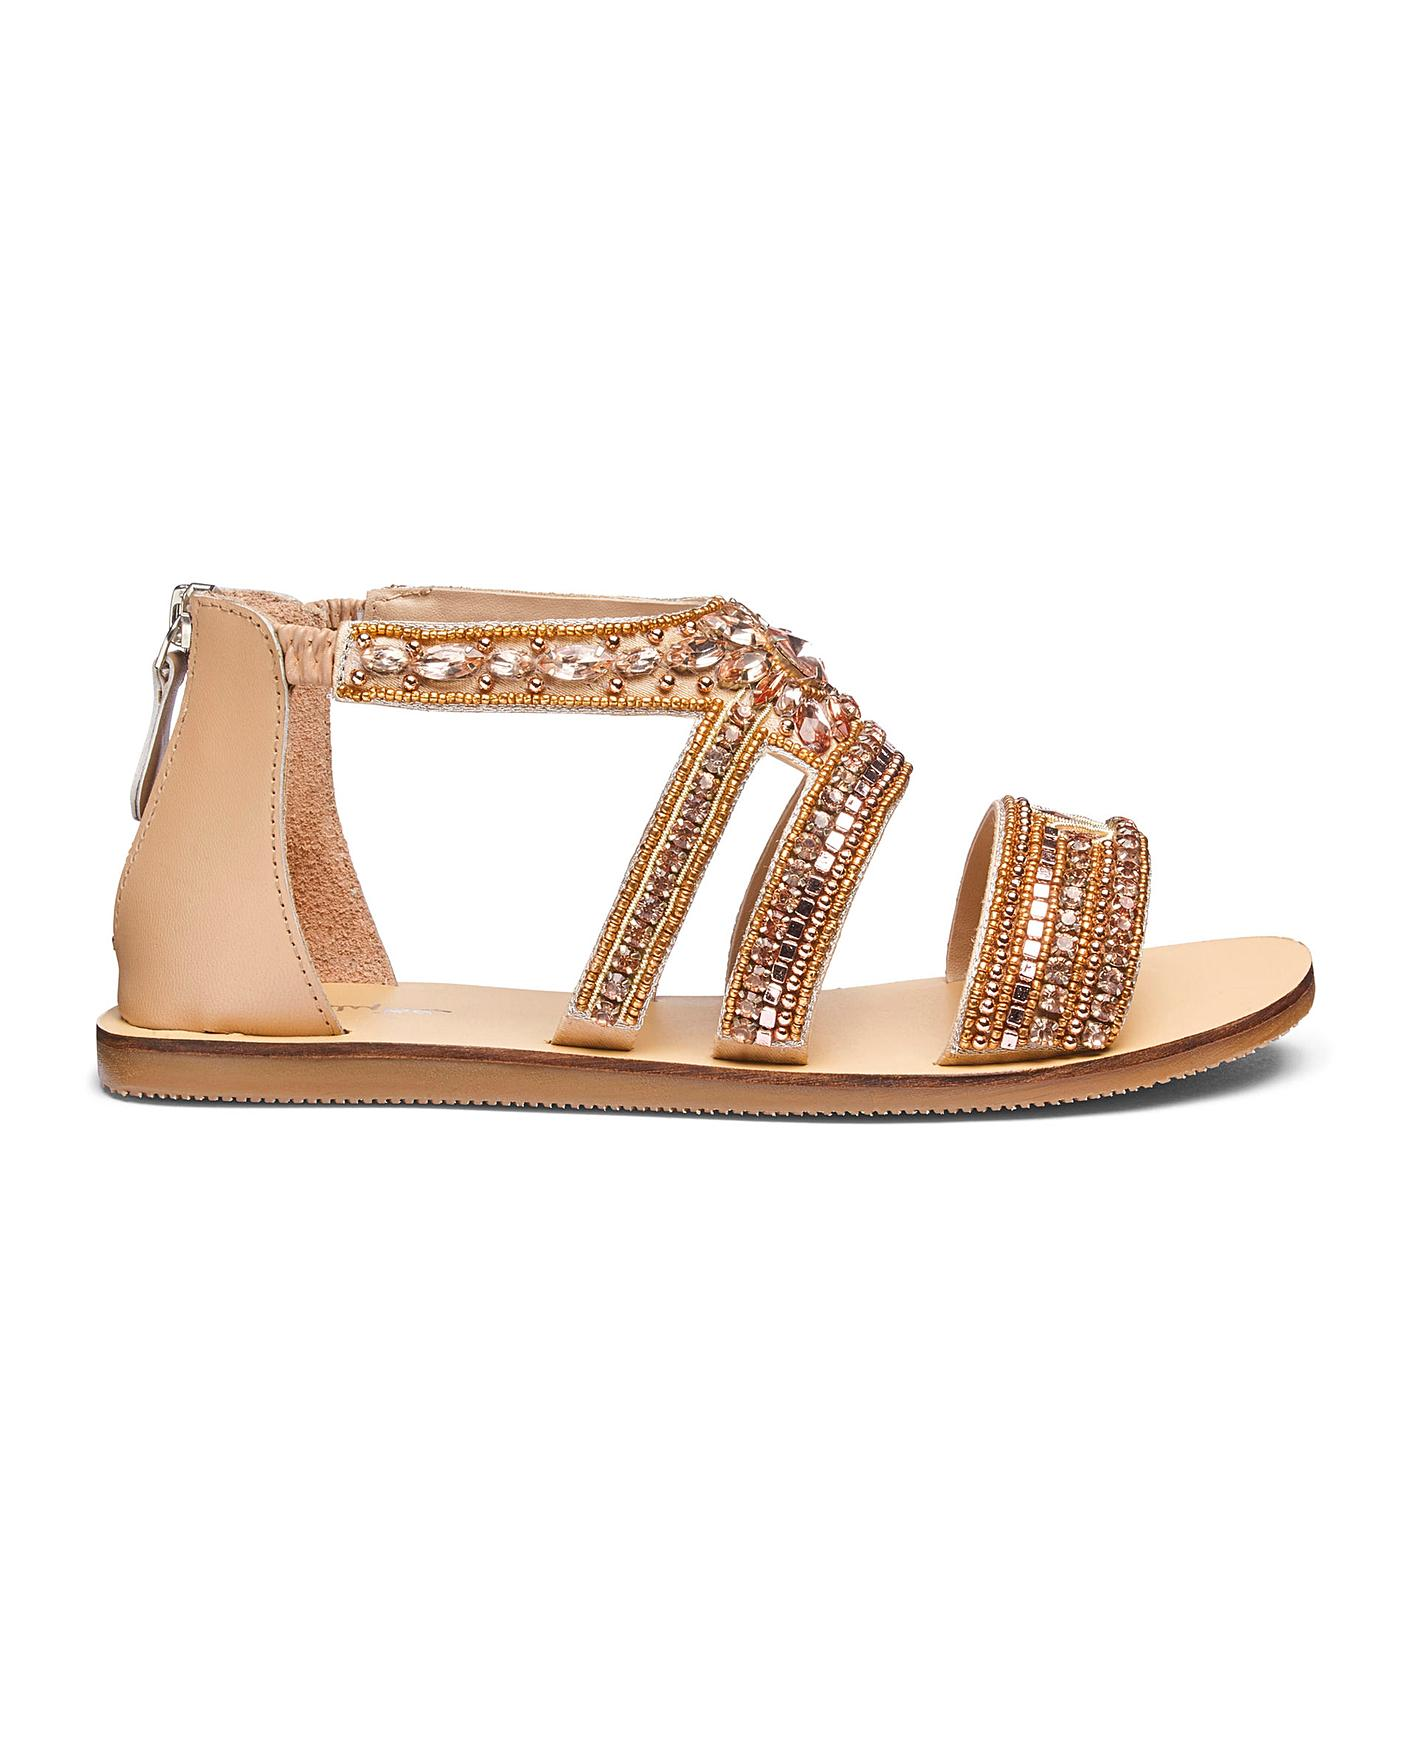 0367f25fa0d Gemma Jewel Sandals Extra Wide Fit